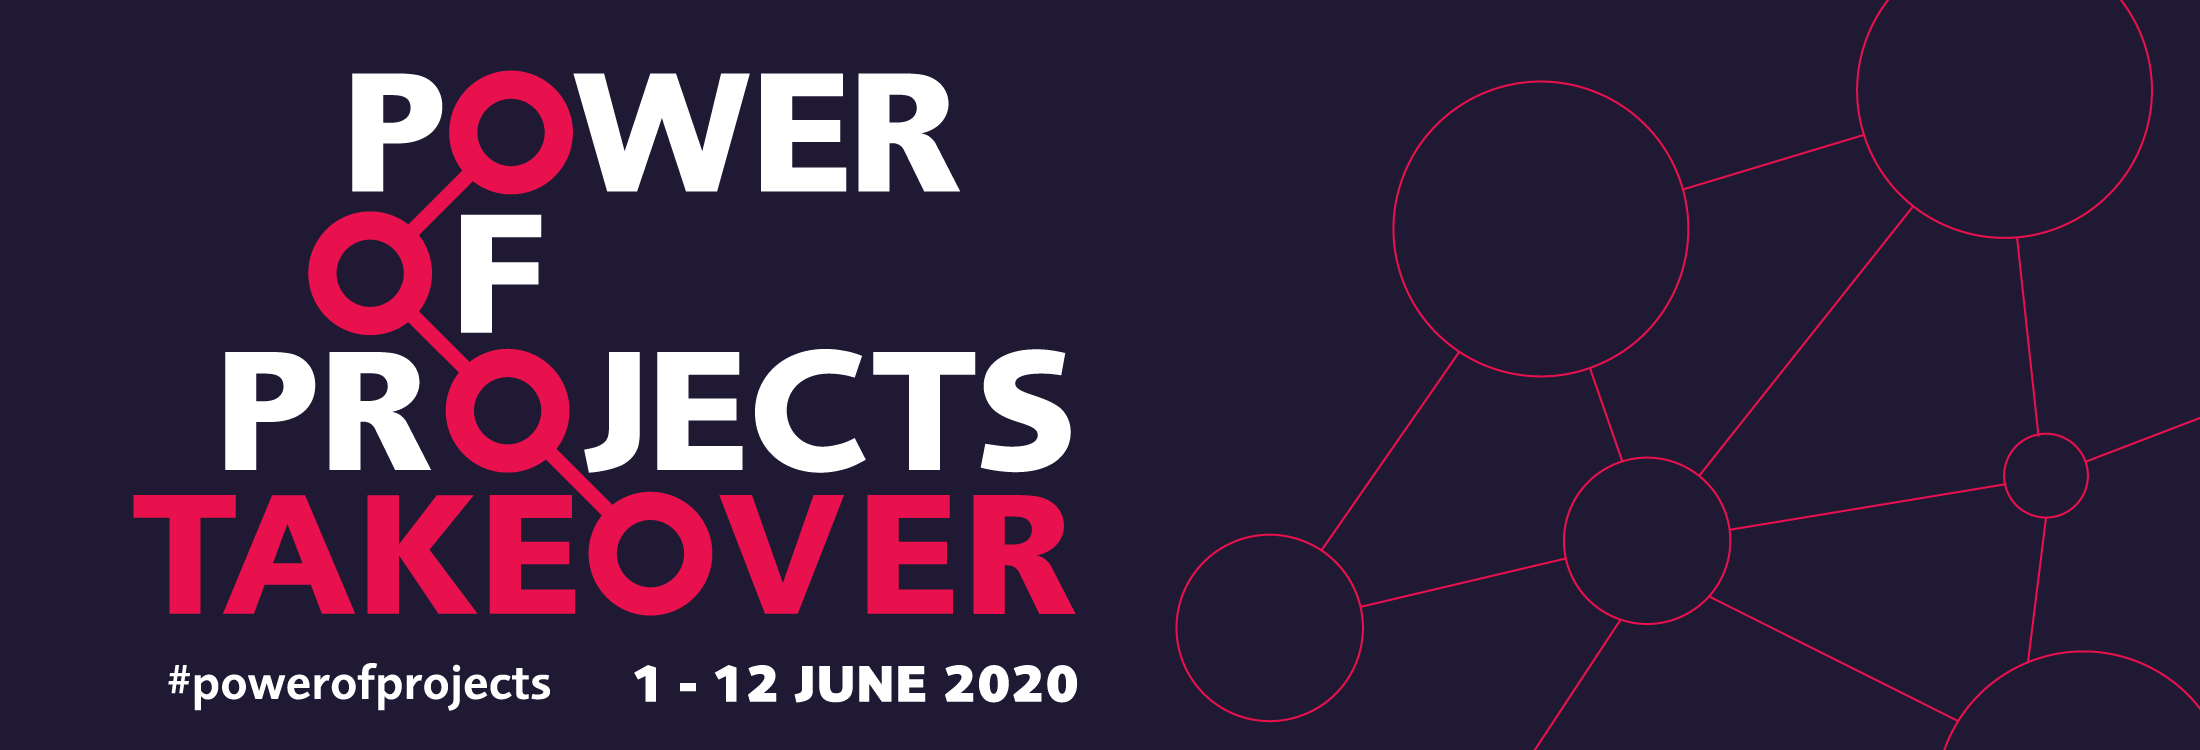 <h1>Power of Projects Takeover</h1>